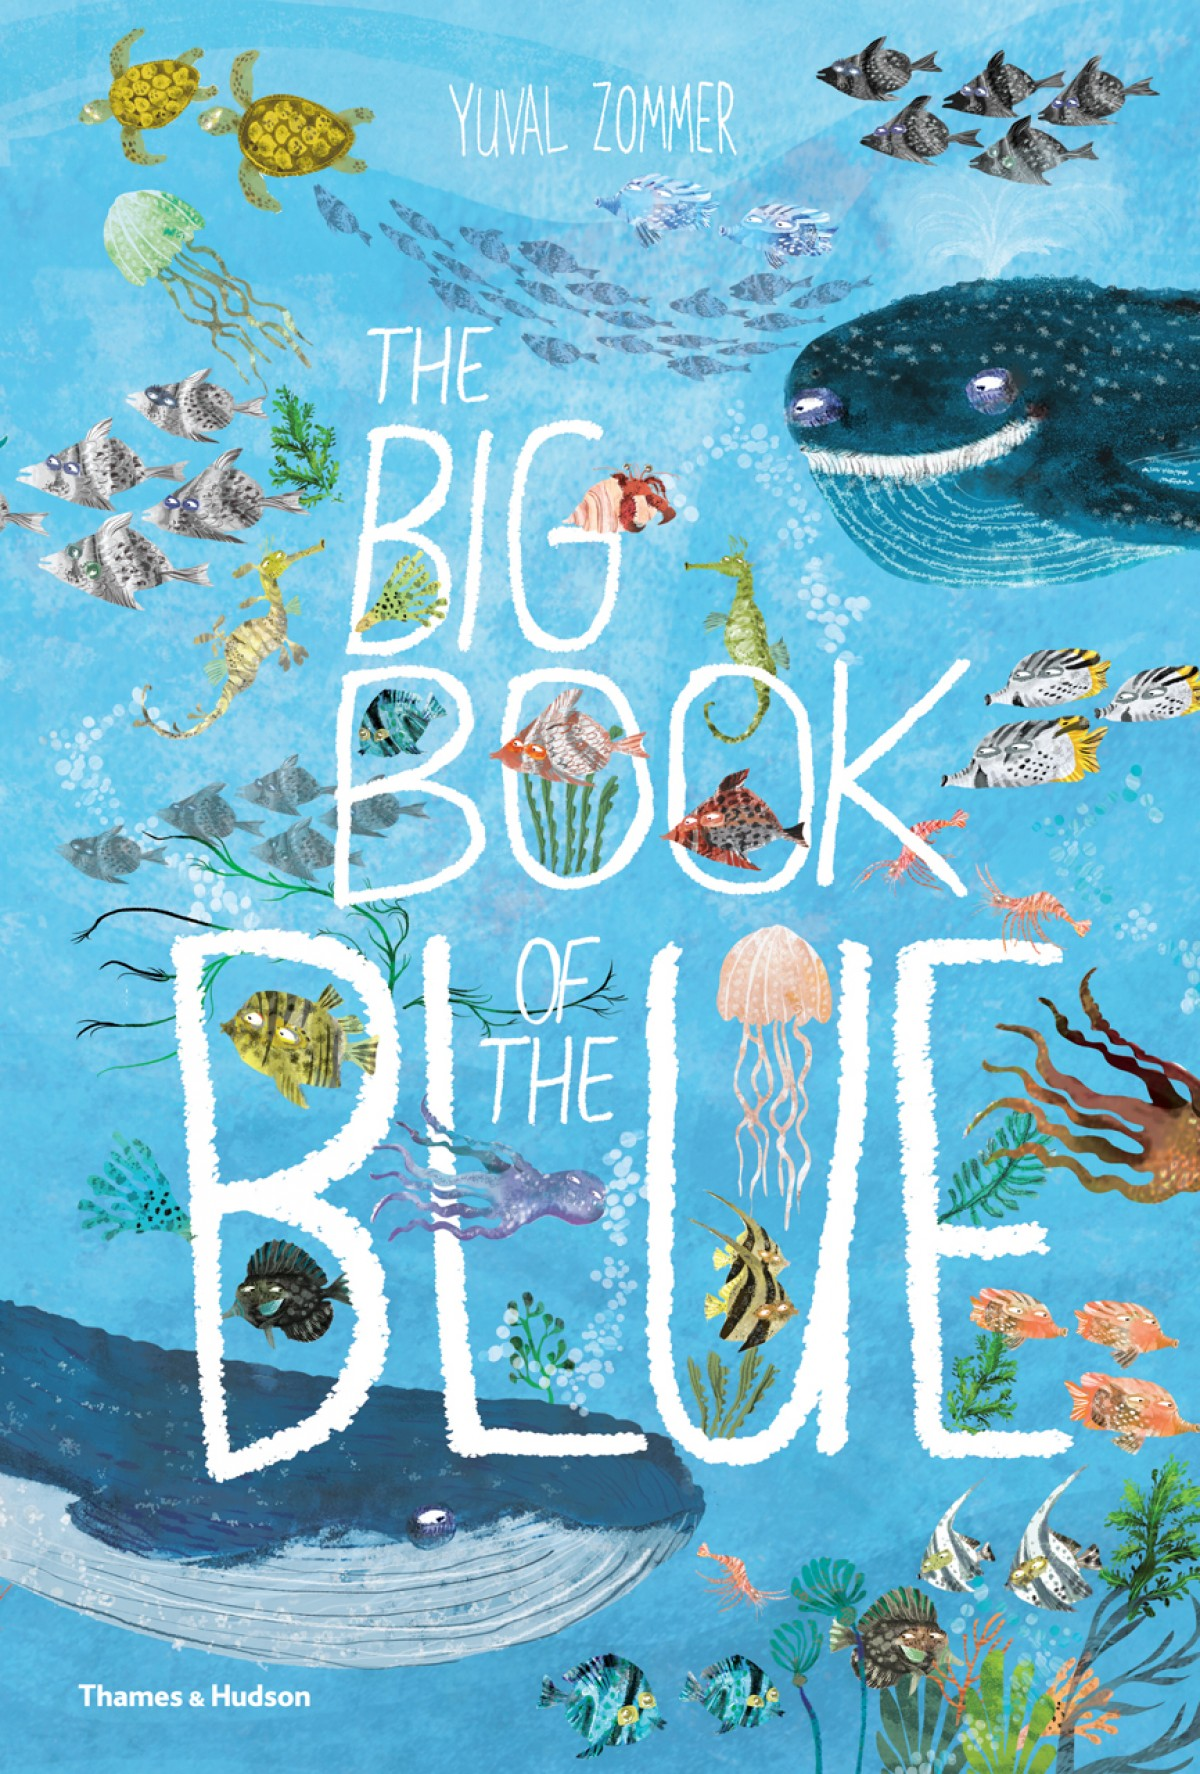 The Big Book of The Blue (Preorder 2 weeks) - Petit World